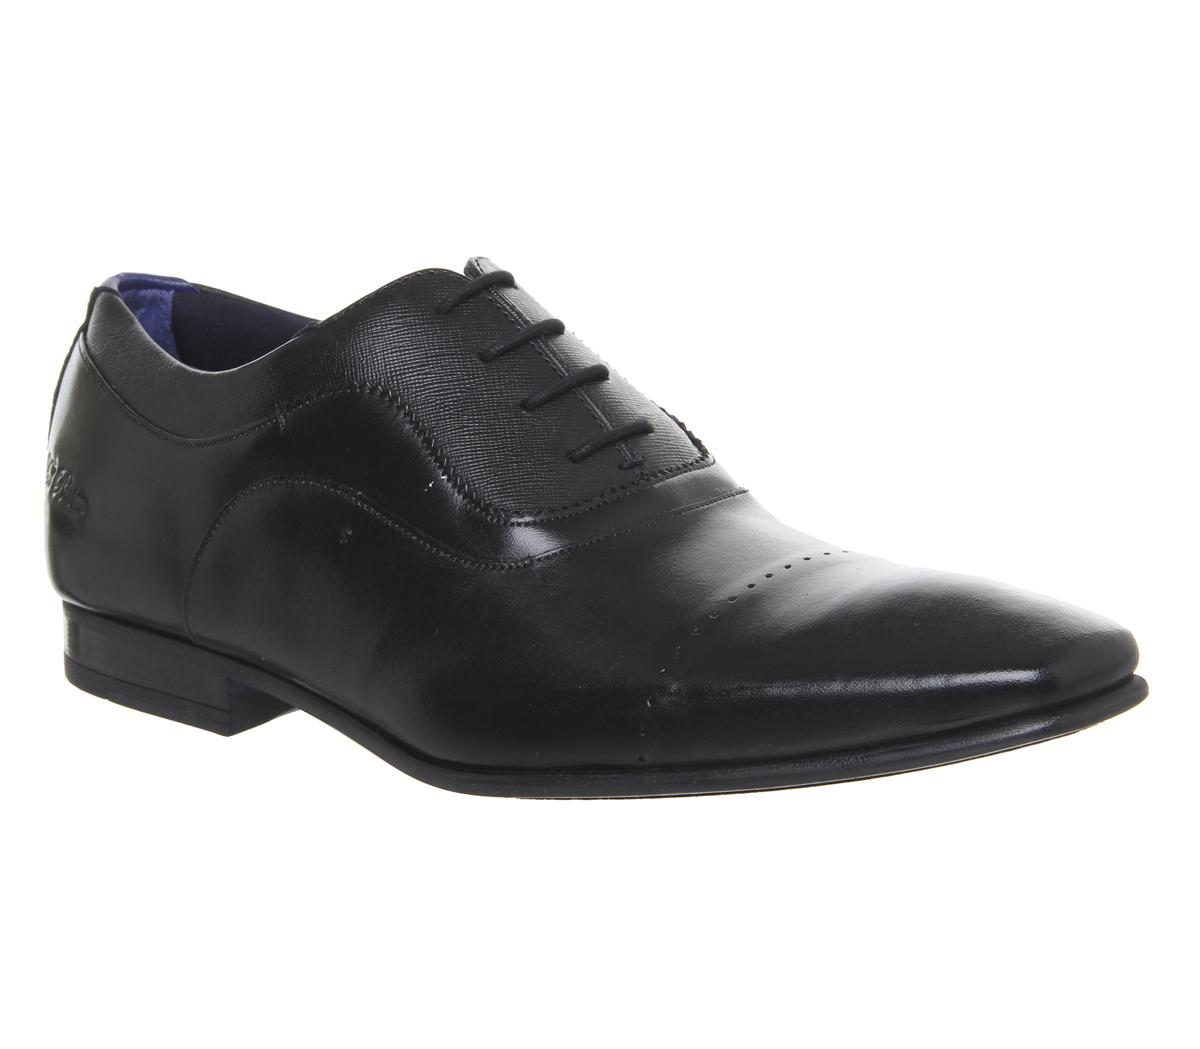 Inesce Shoes